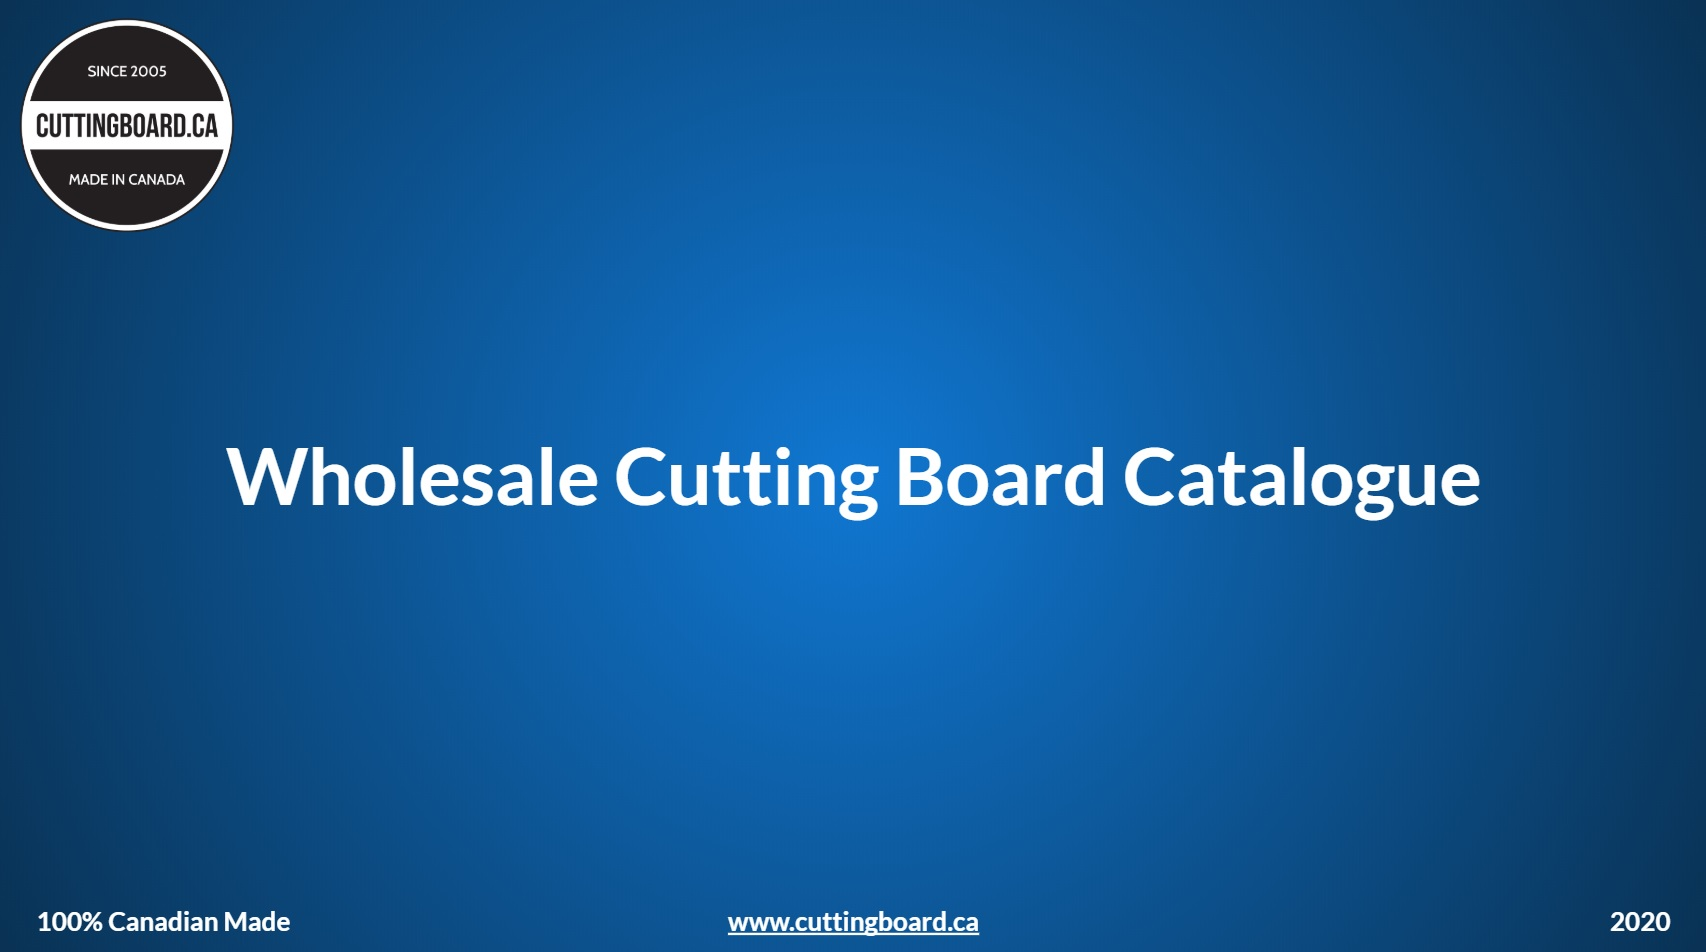 Wholesale-cutting-boards-catalogue-bulk-cutting-boards-Canada-2020